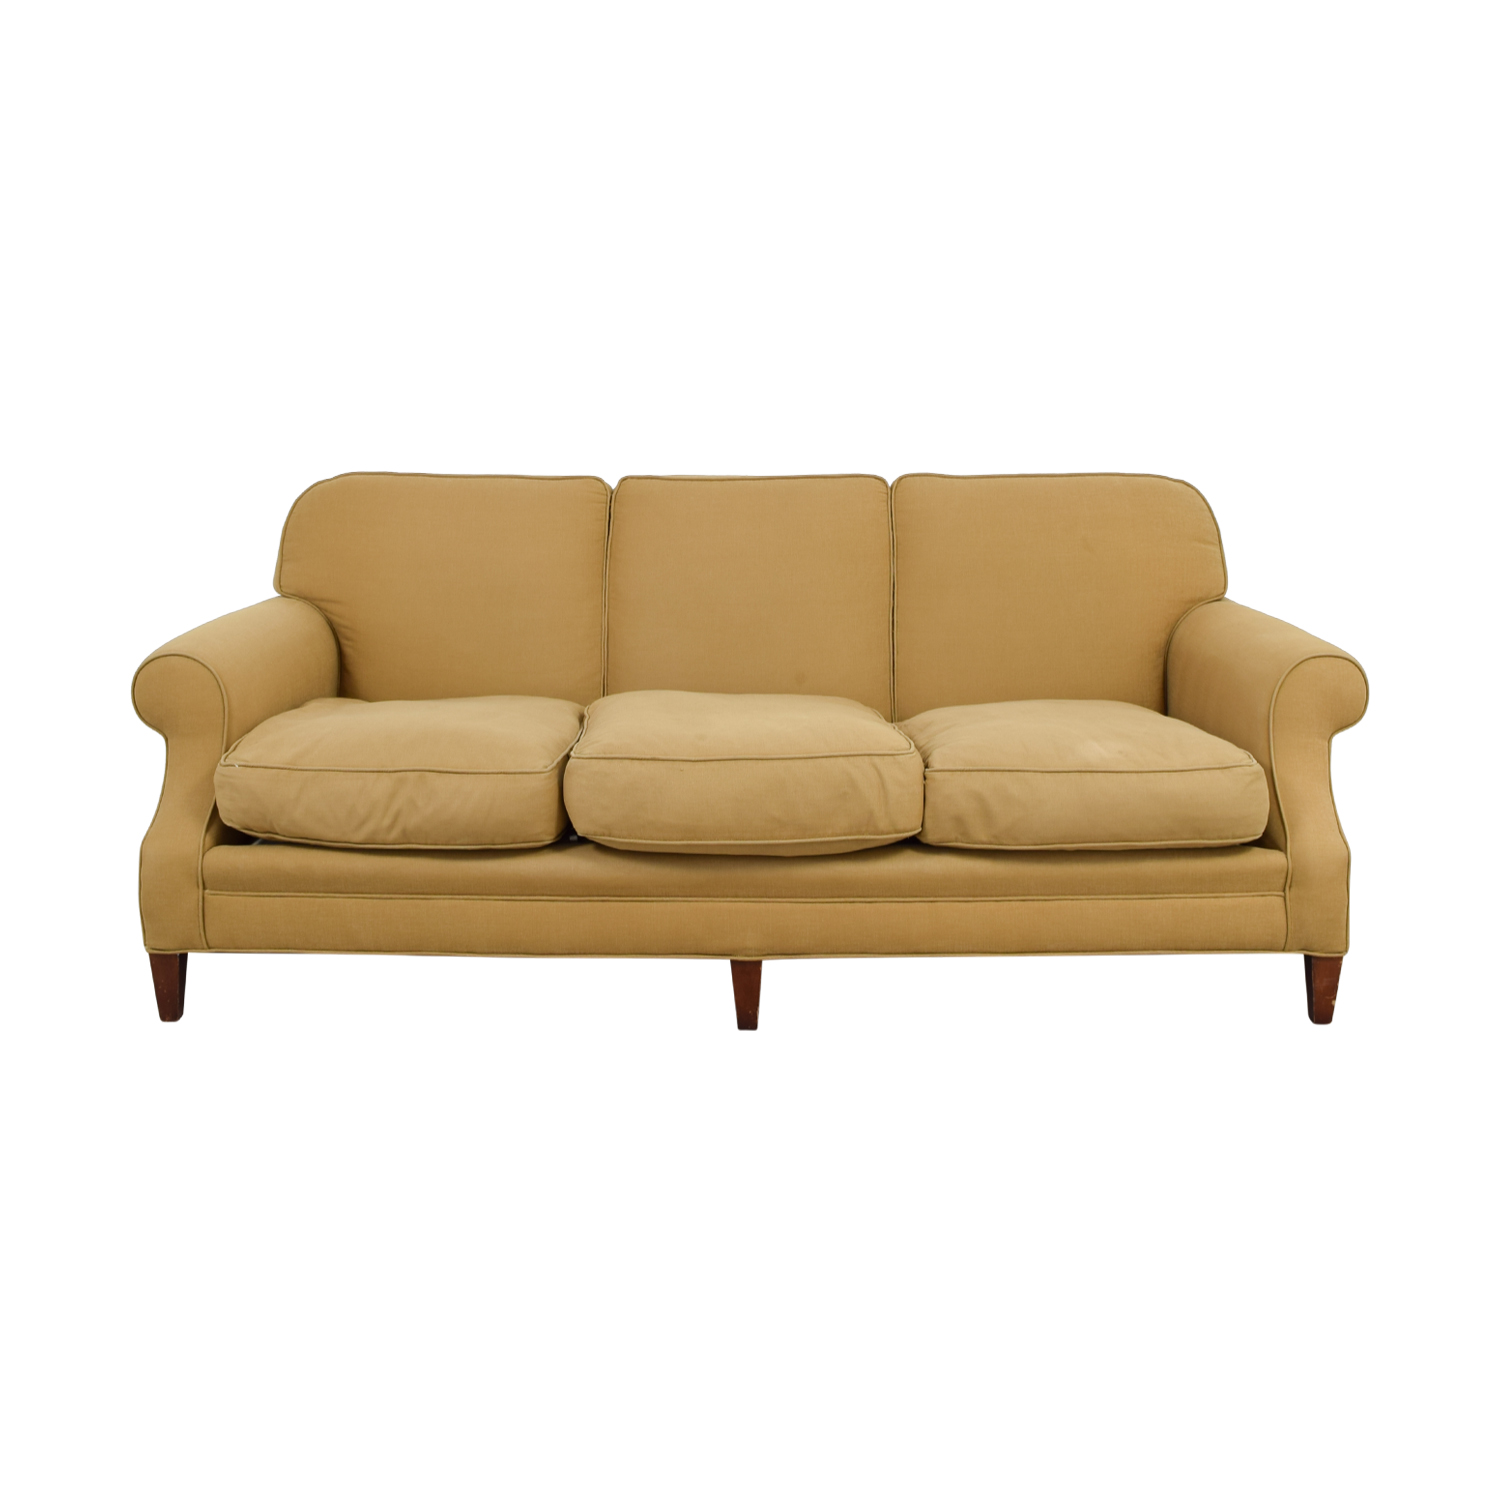 Beige Three Cushion Couch nj